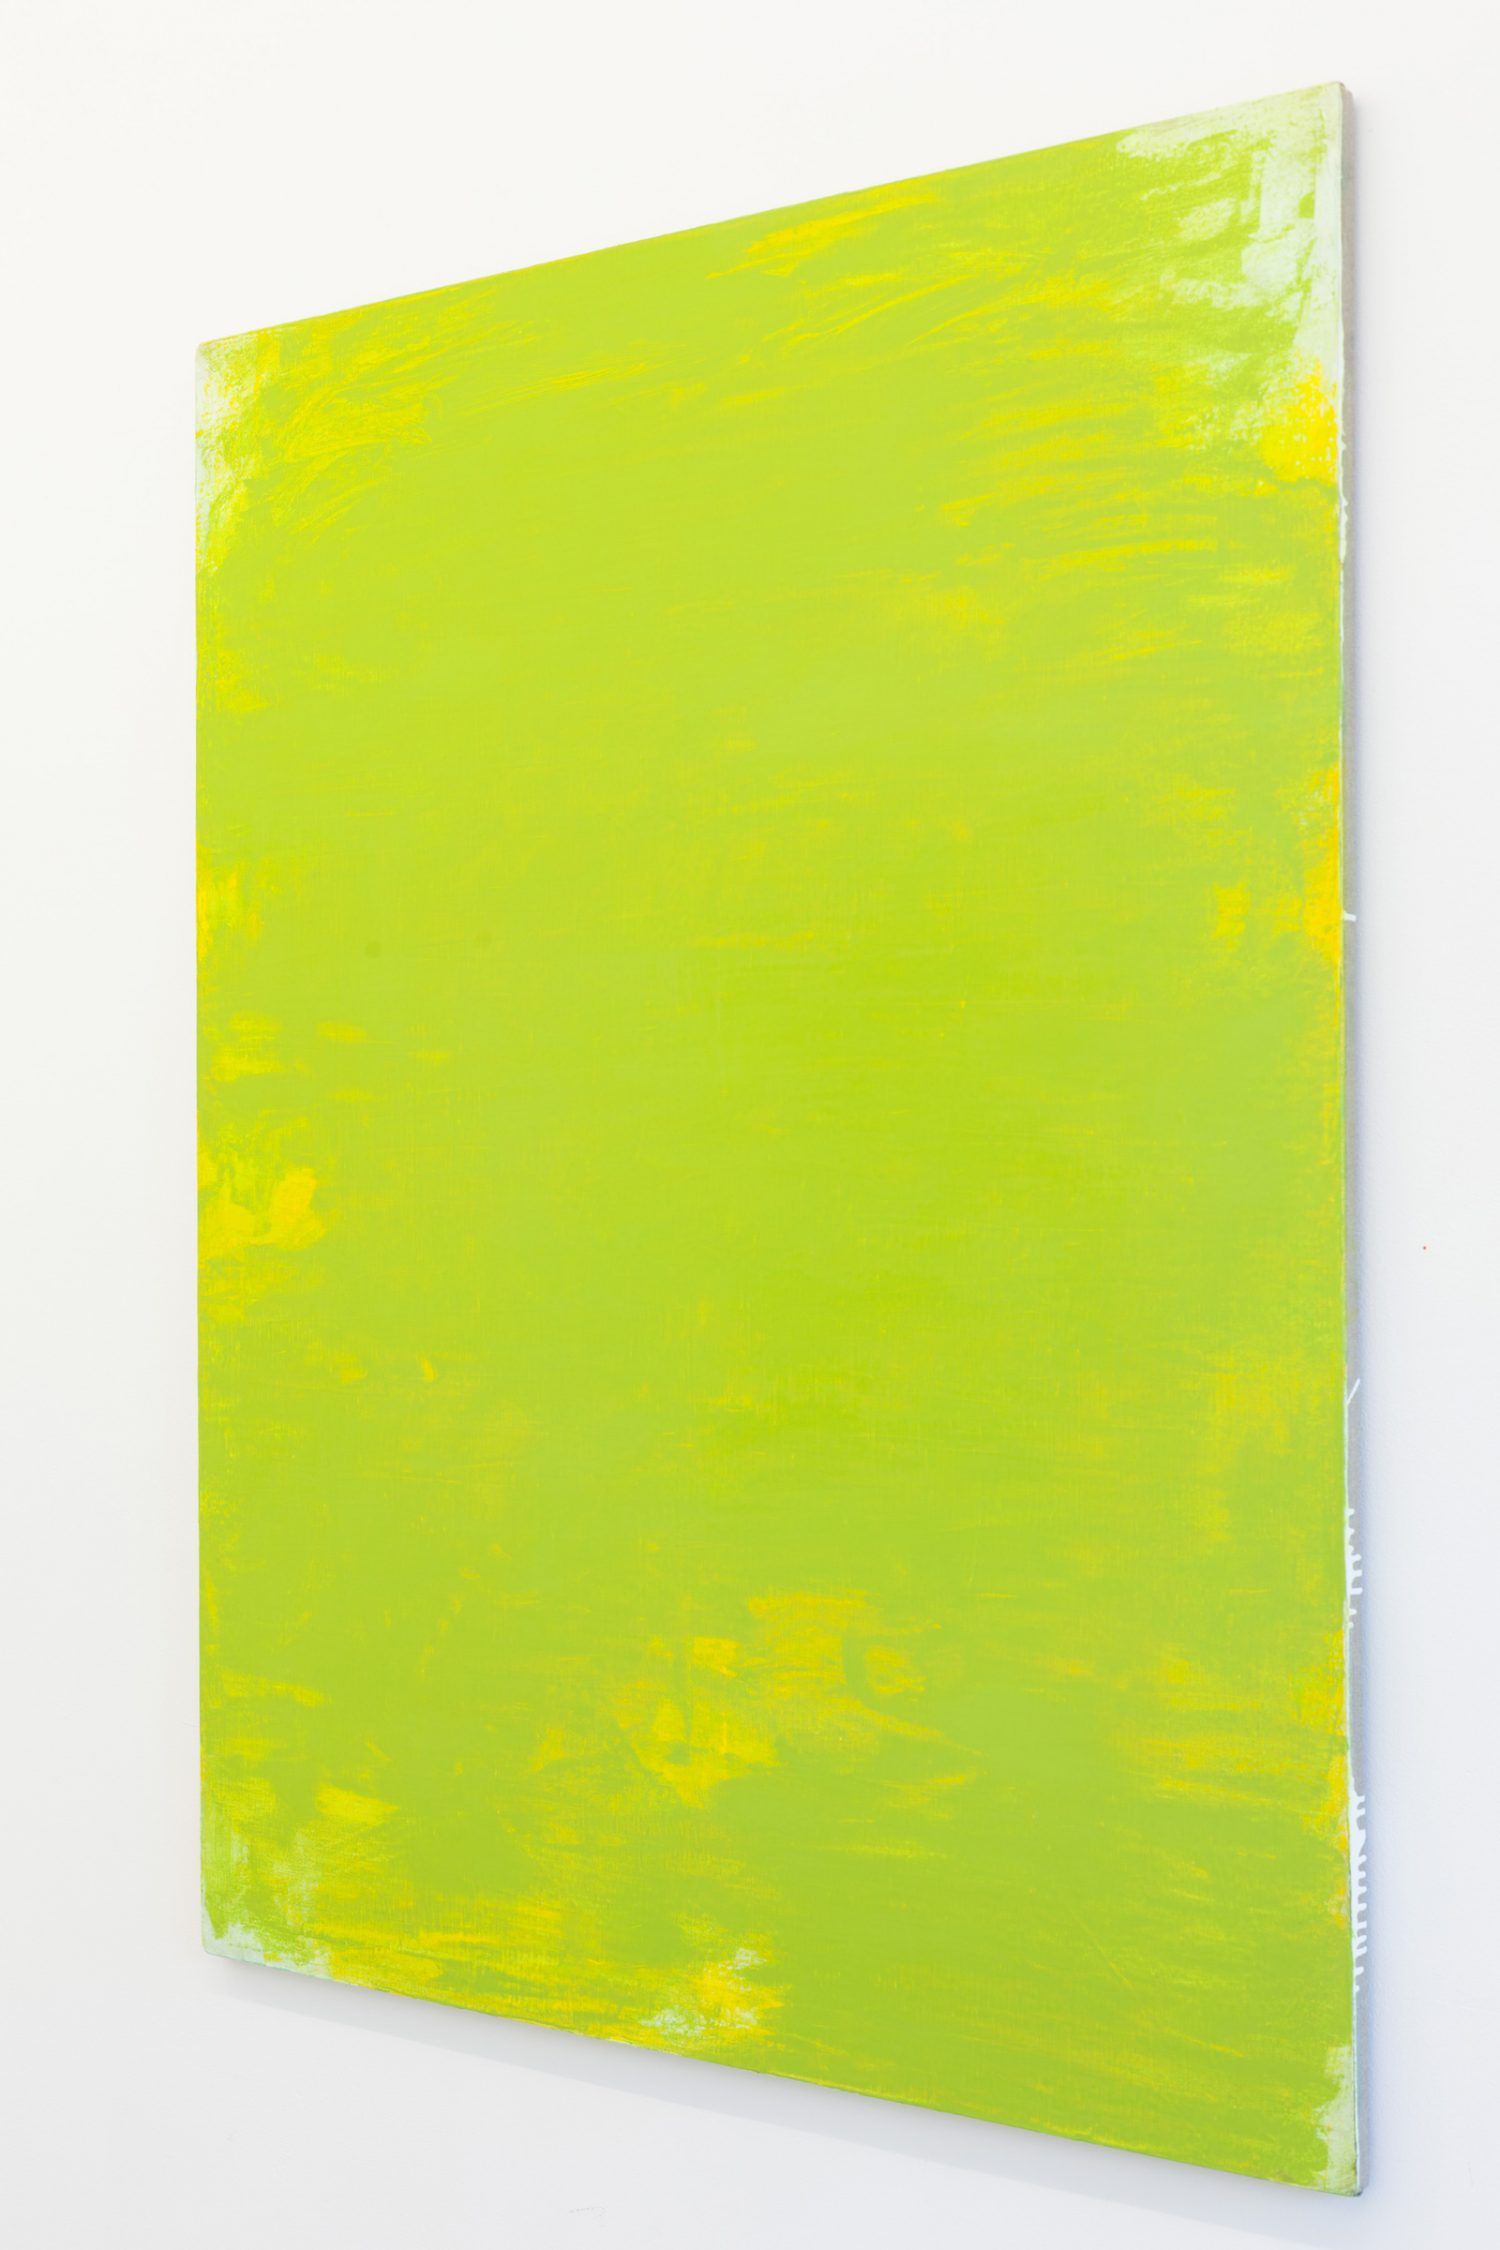 Cinnabar-Green-124-x-154-cm-Pigment,-linseed-oil-and-beeswax-on-linen-$6100